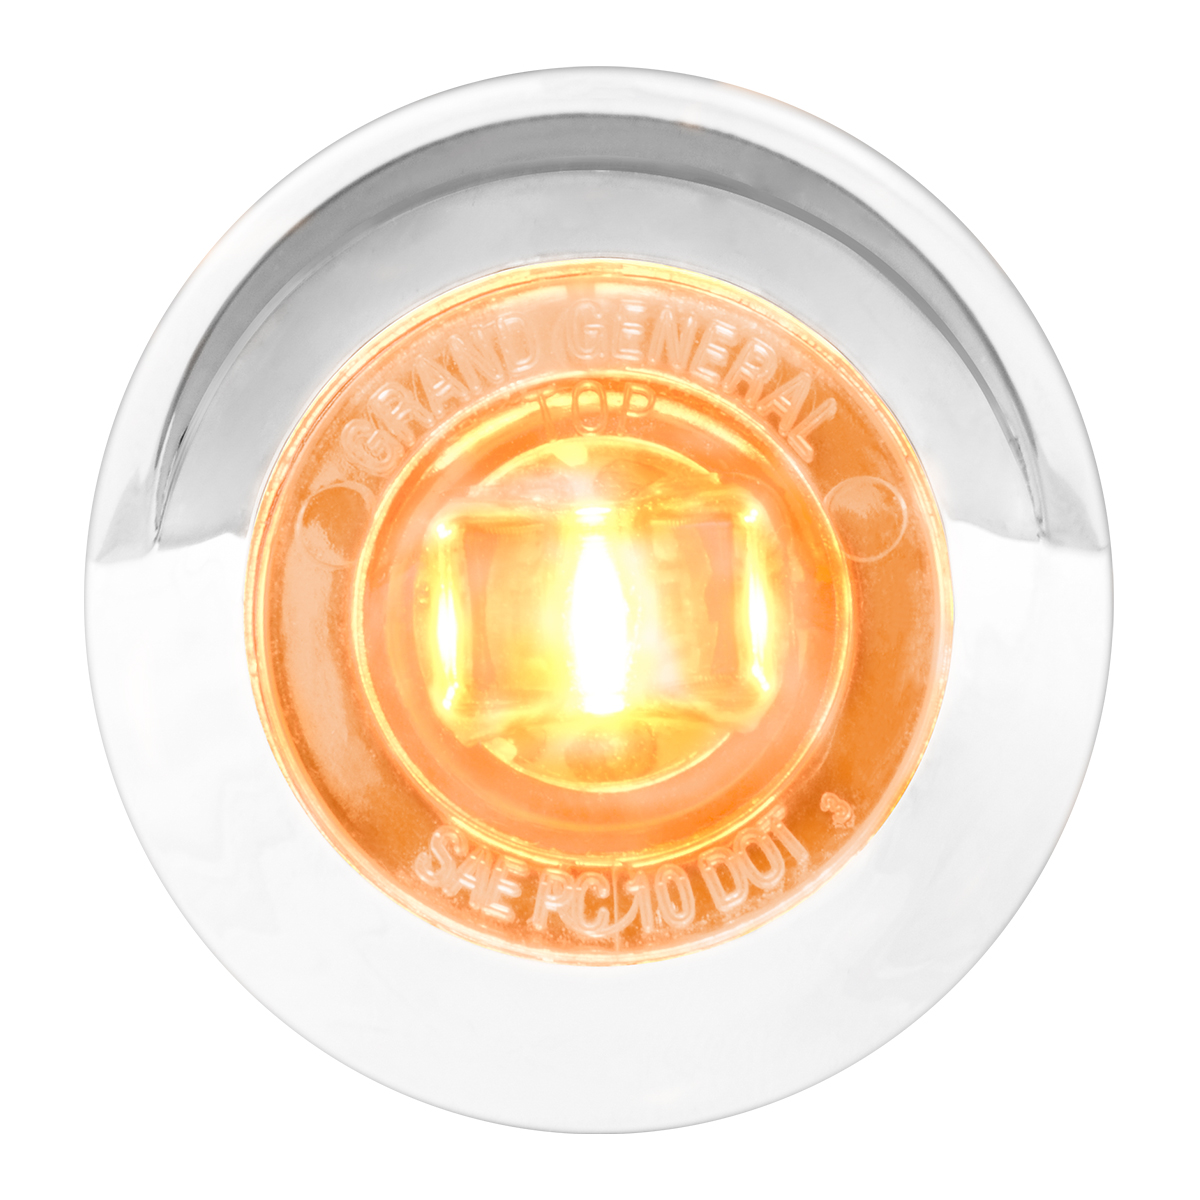 "75231 1-1/4"" Dia. Dual Function LED Light with Chrome Plastic Bezel w/ Visor and Nut"